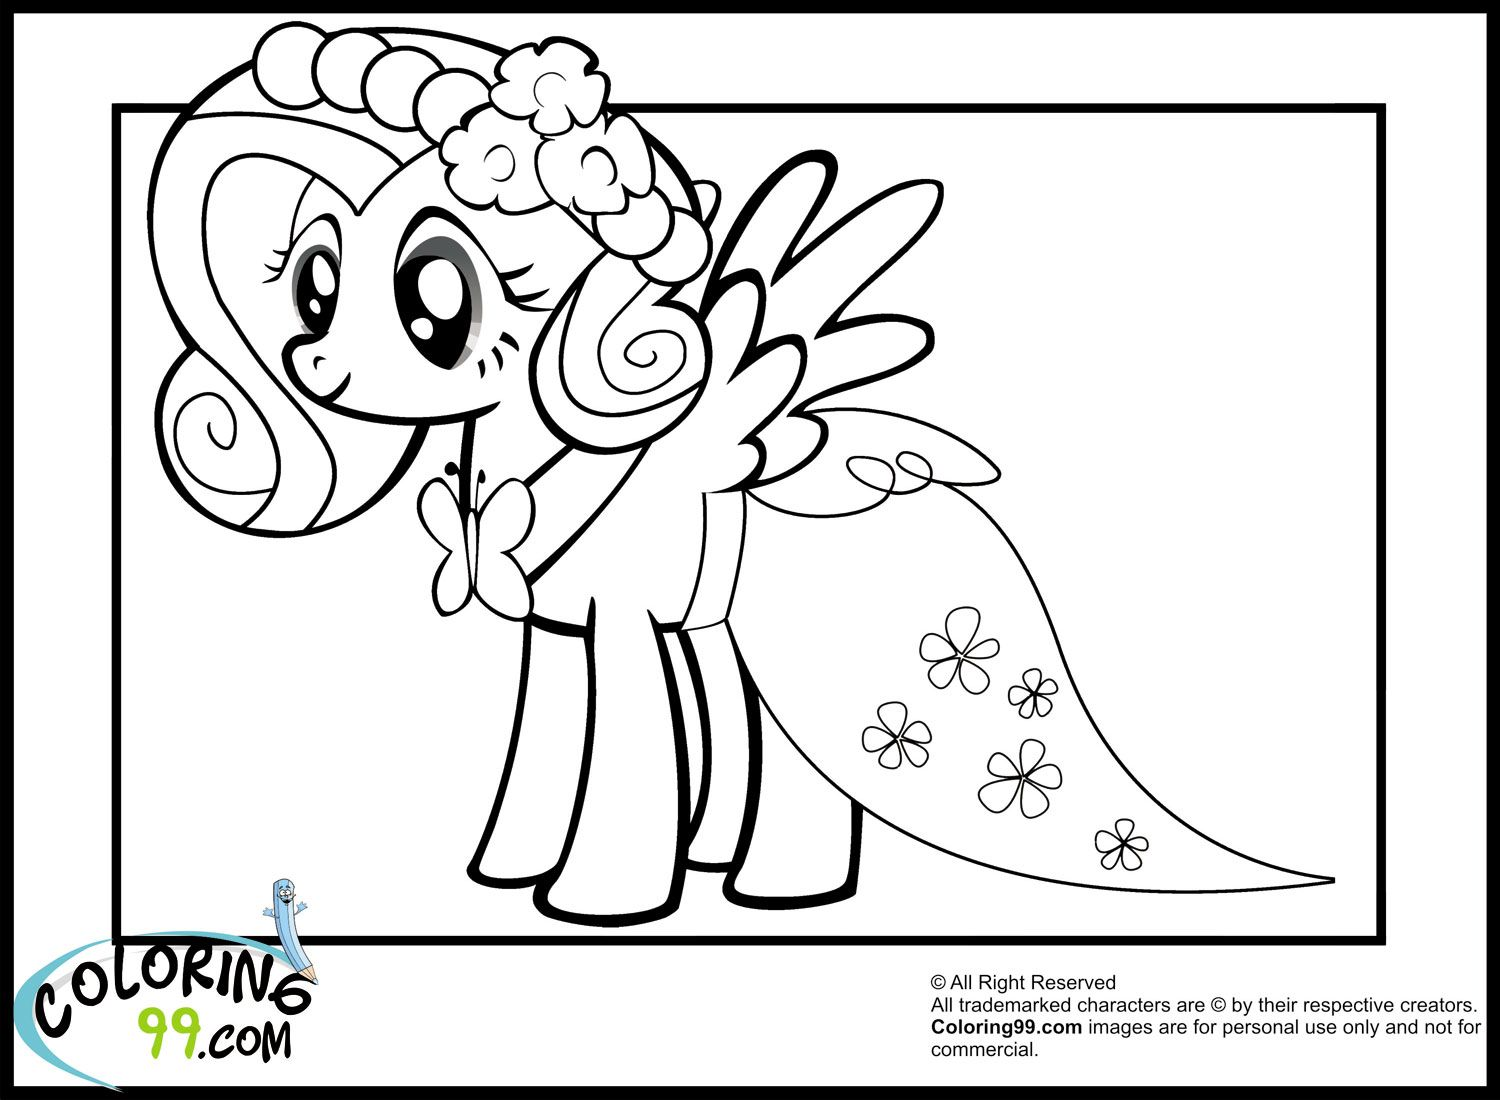 My little pony rainbow rocks coloring pages games -  Wedding Gowns Modern Fuchsia Sheath Cap Sleeves Open Back Diamond Short Length Homecomg Dress My Little Pony Fluttershy Coloring Pages Coloring